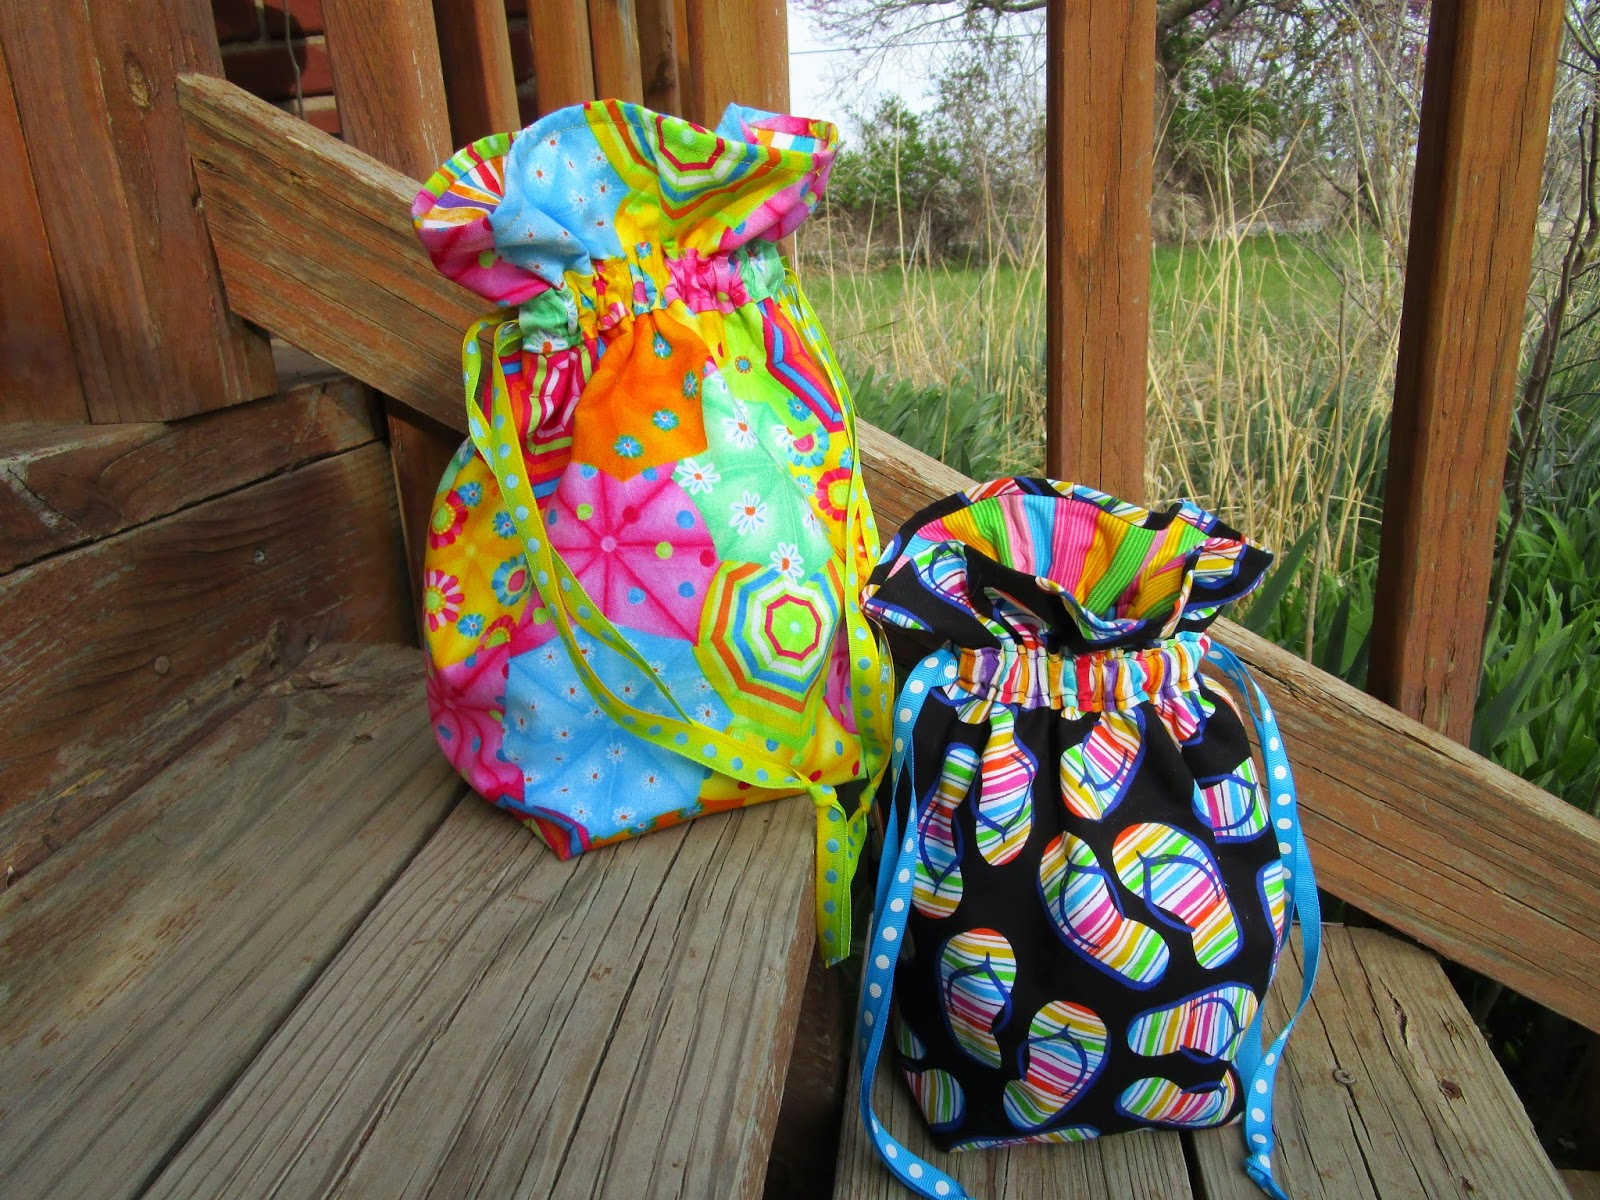 Here Are Photos Of The Three Finished Bags Arent They Cute